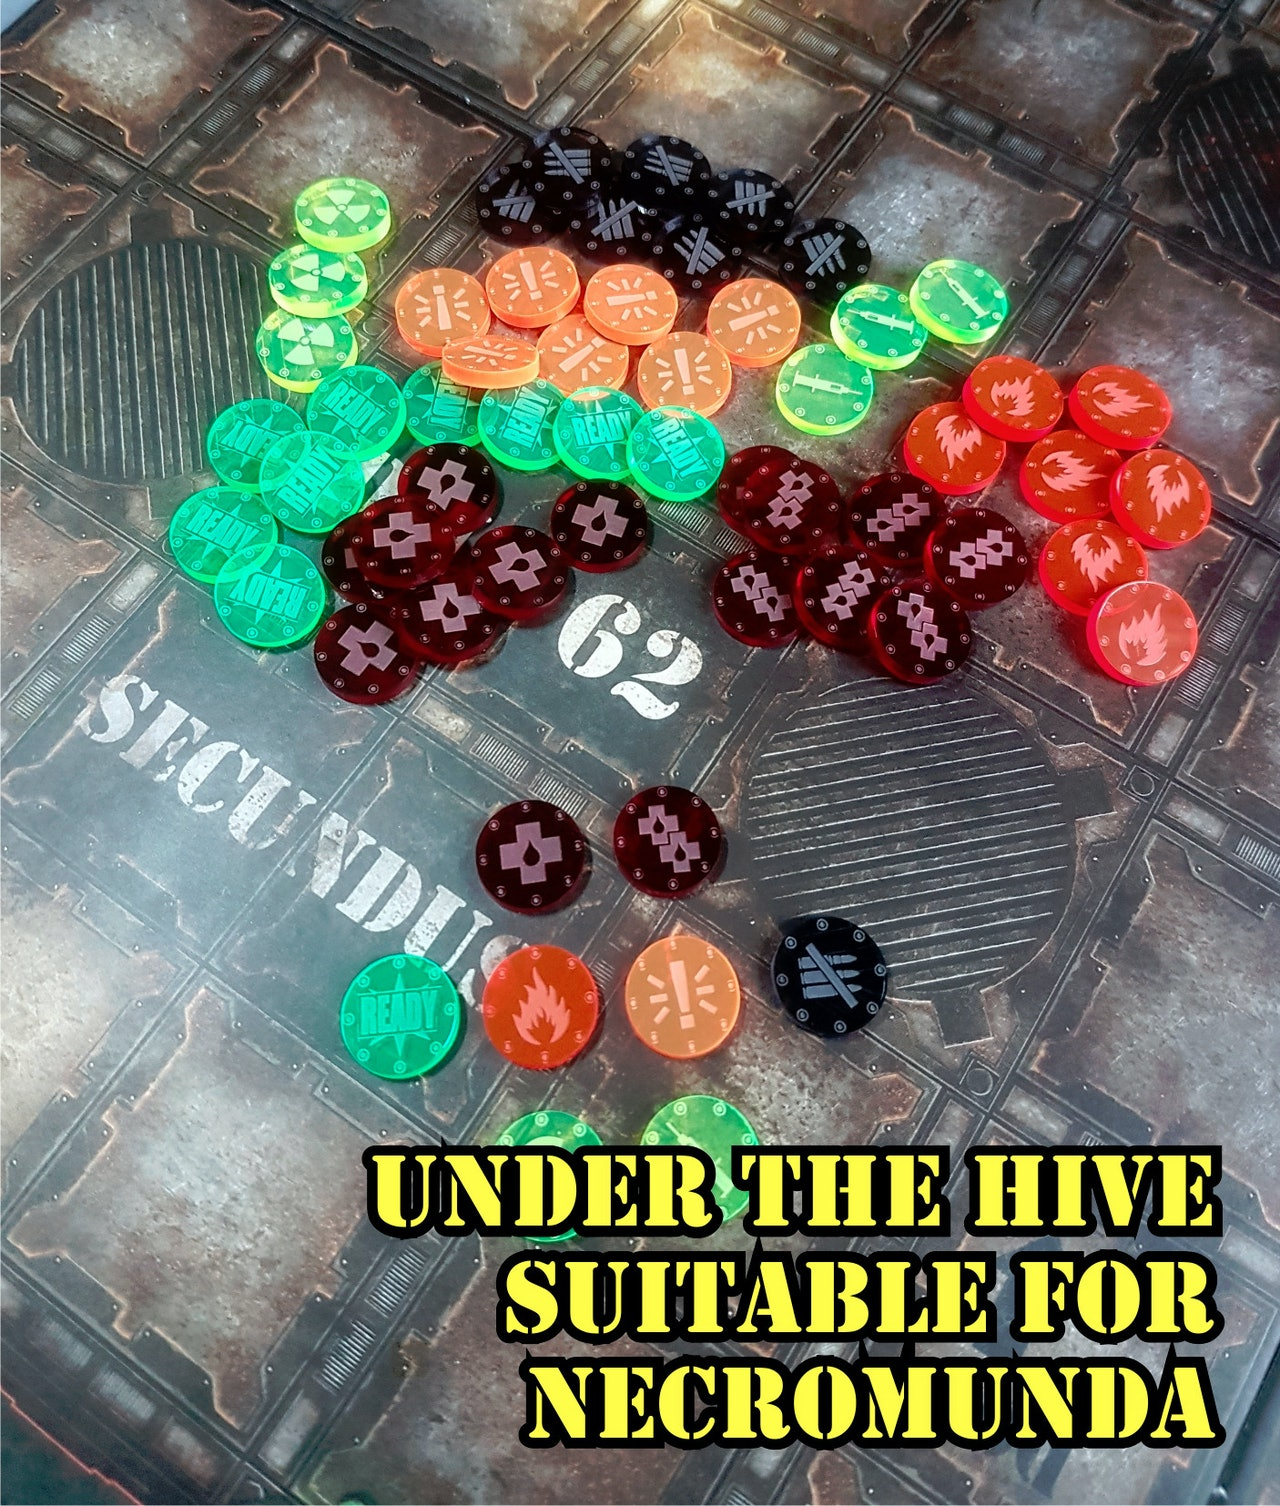 Under the Hive (Suitable for Necromunda)